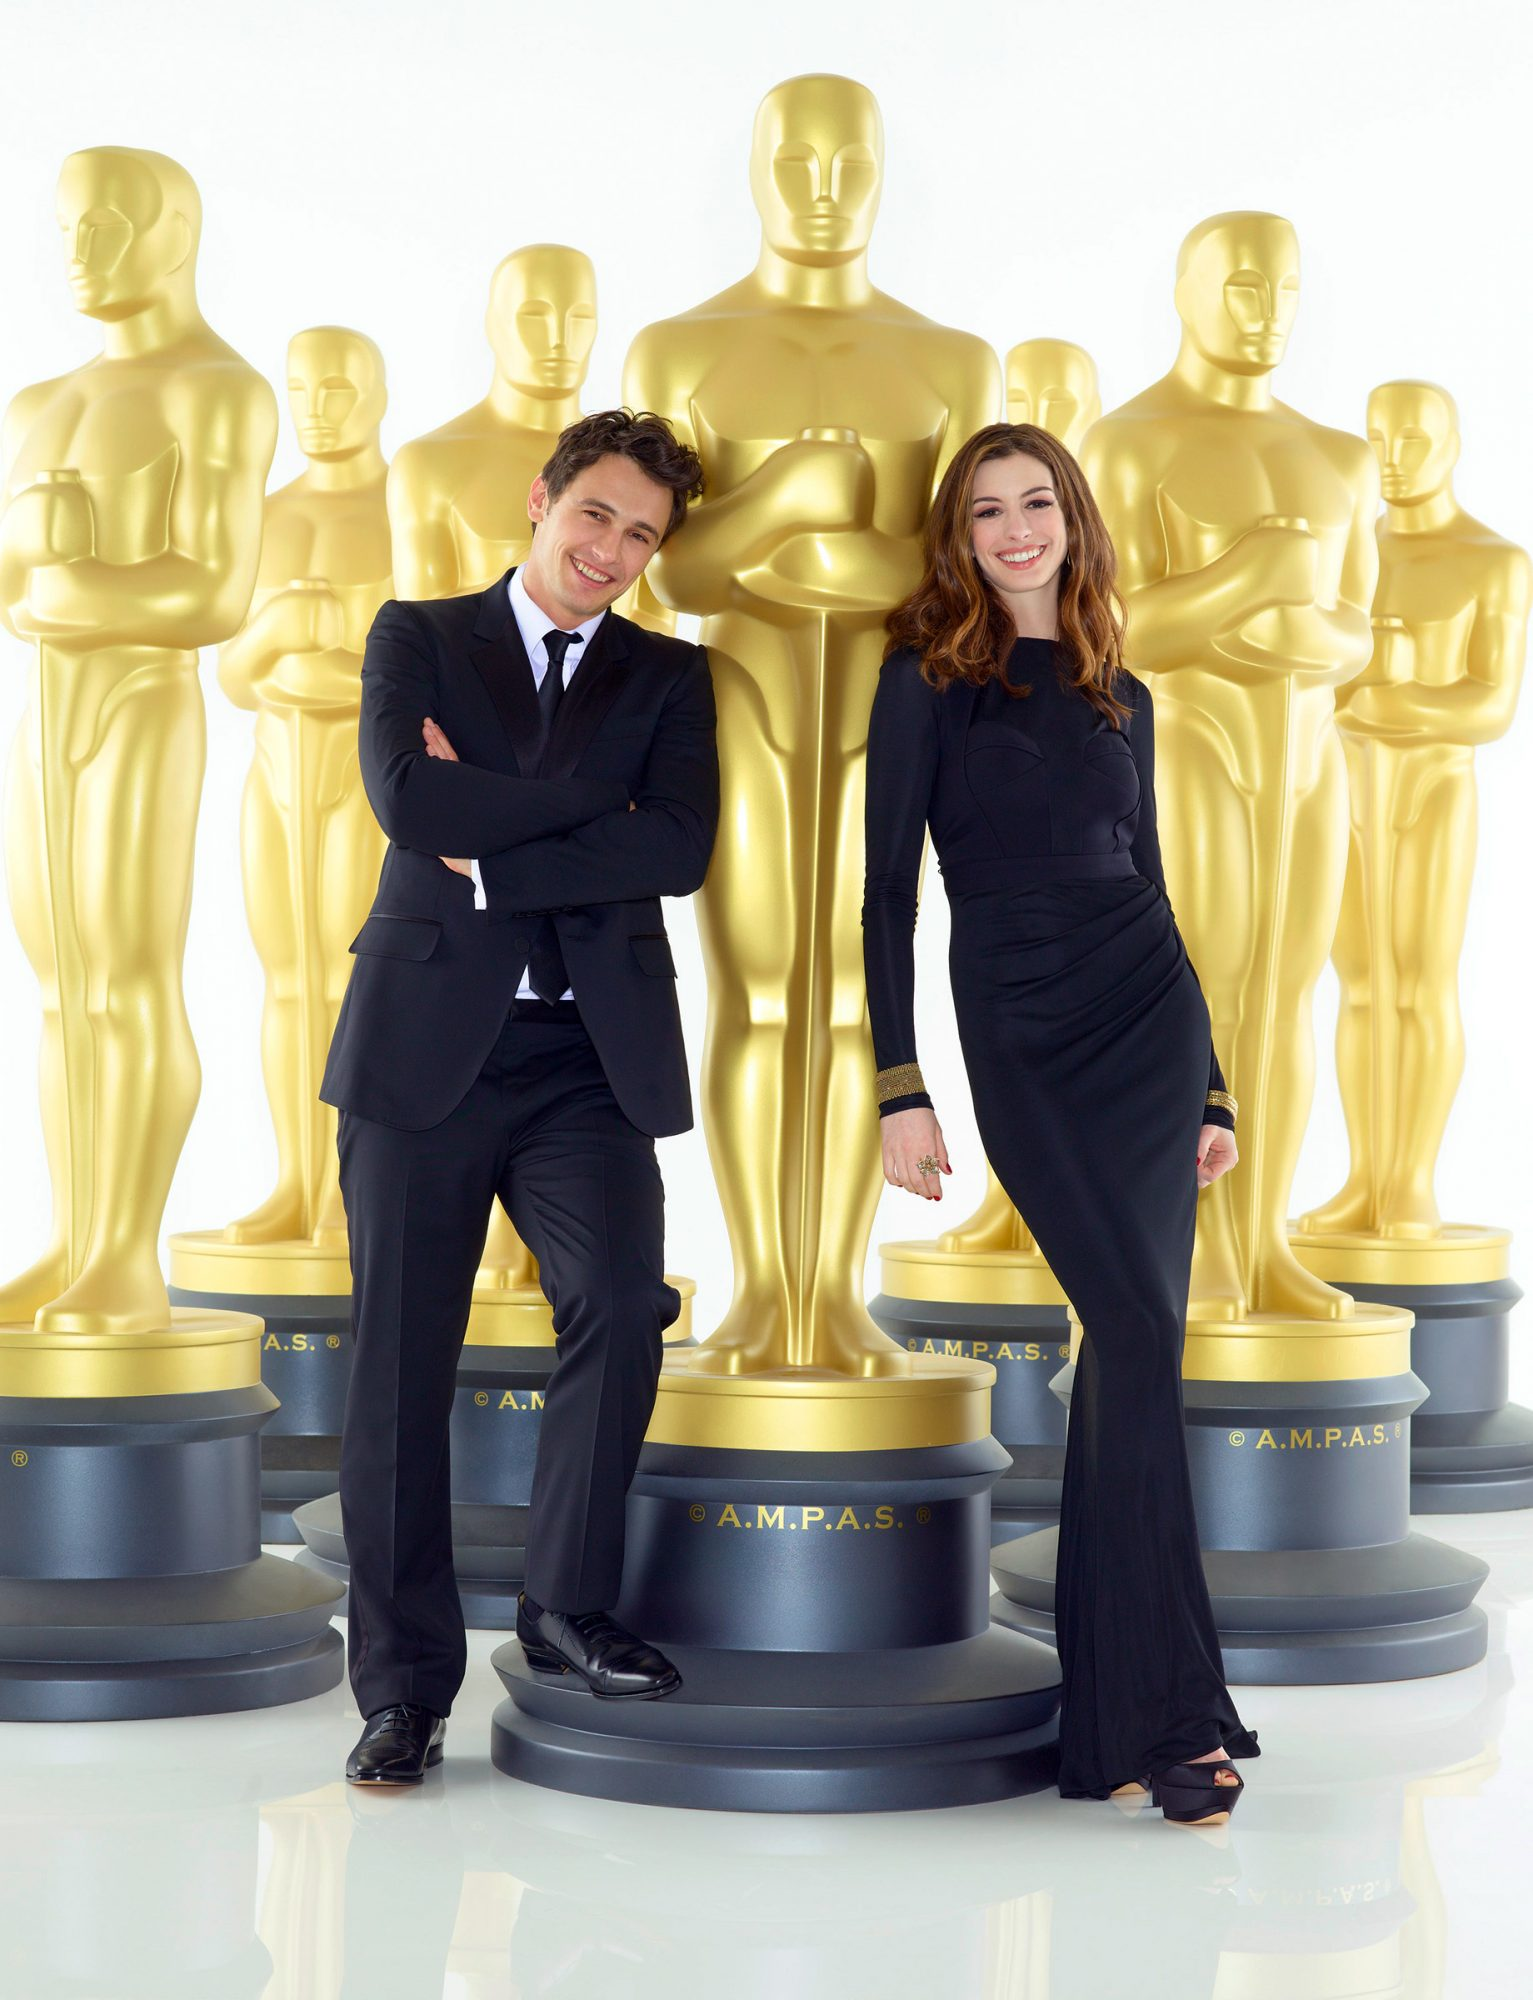 James Franco and Anne Hathaway during the 83rd Annual Academy Awards